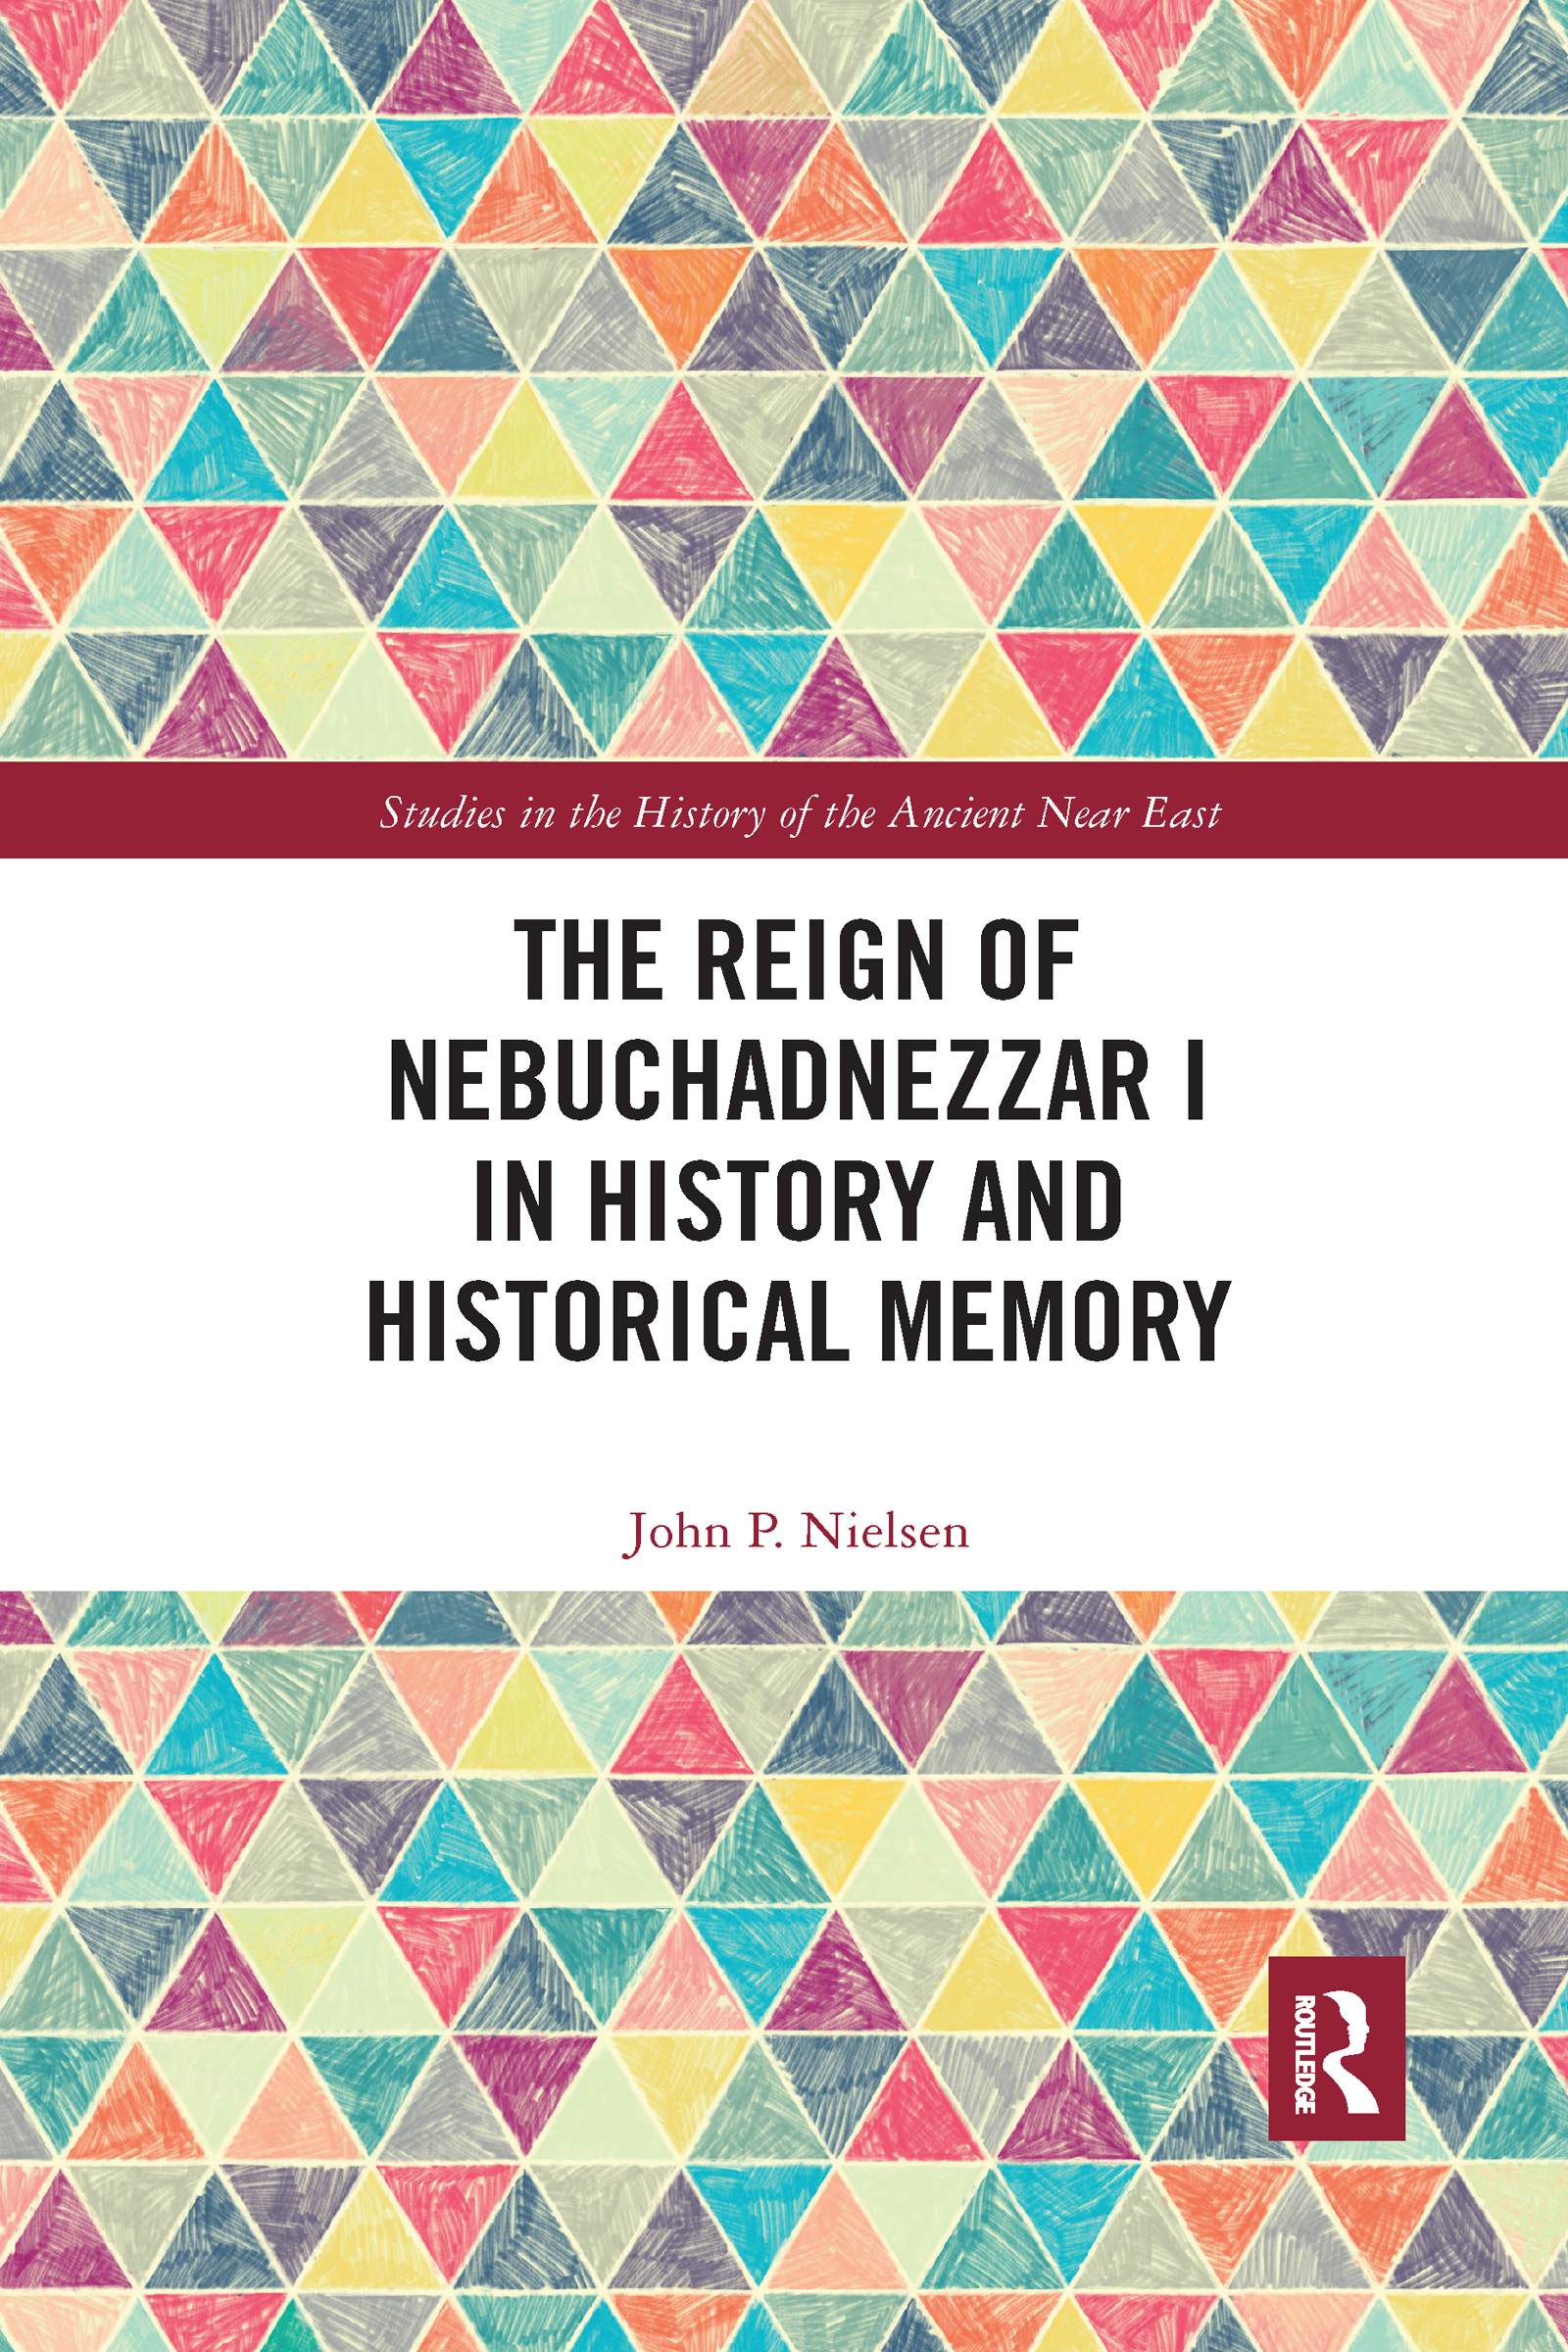 The Reign of Nebuchadnezzar I in History and Historical Memory